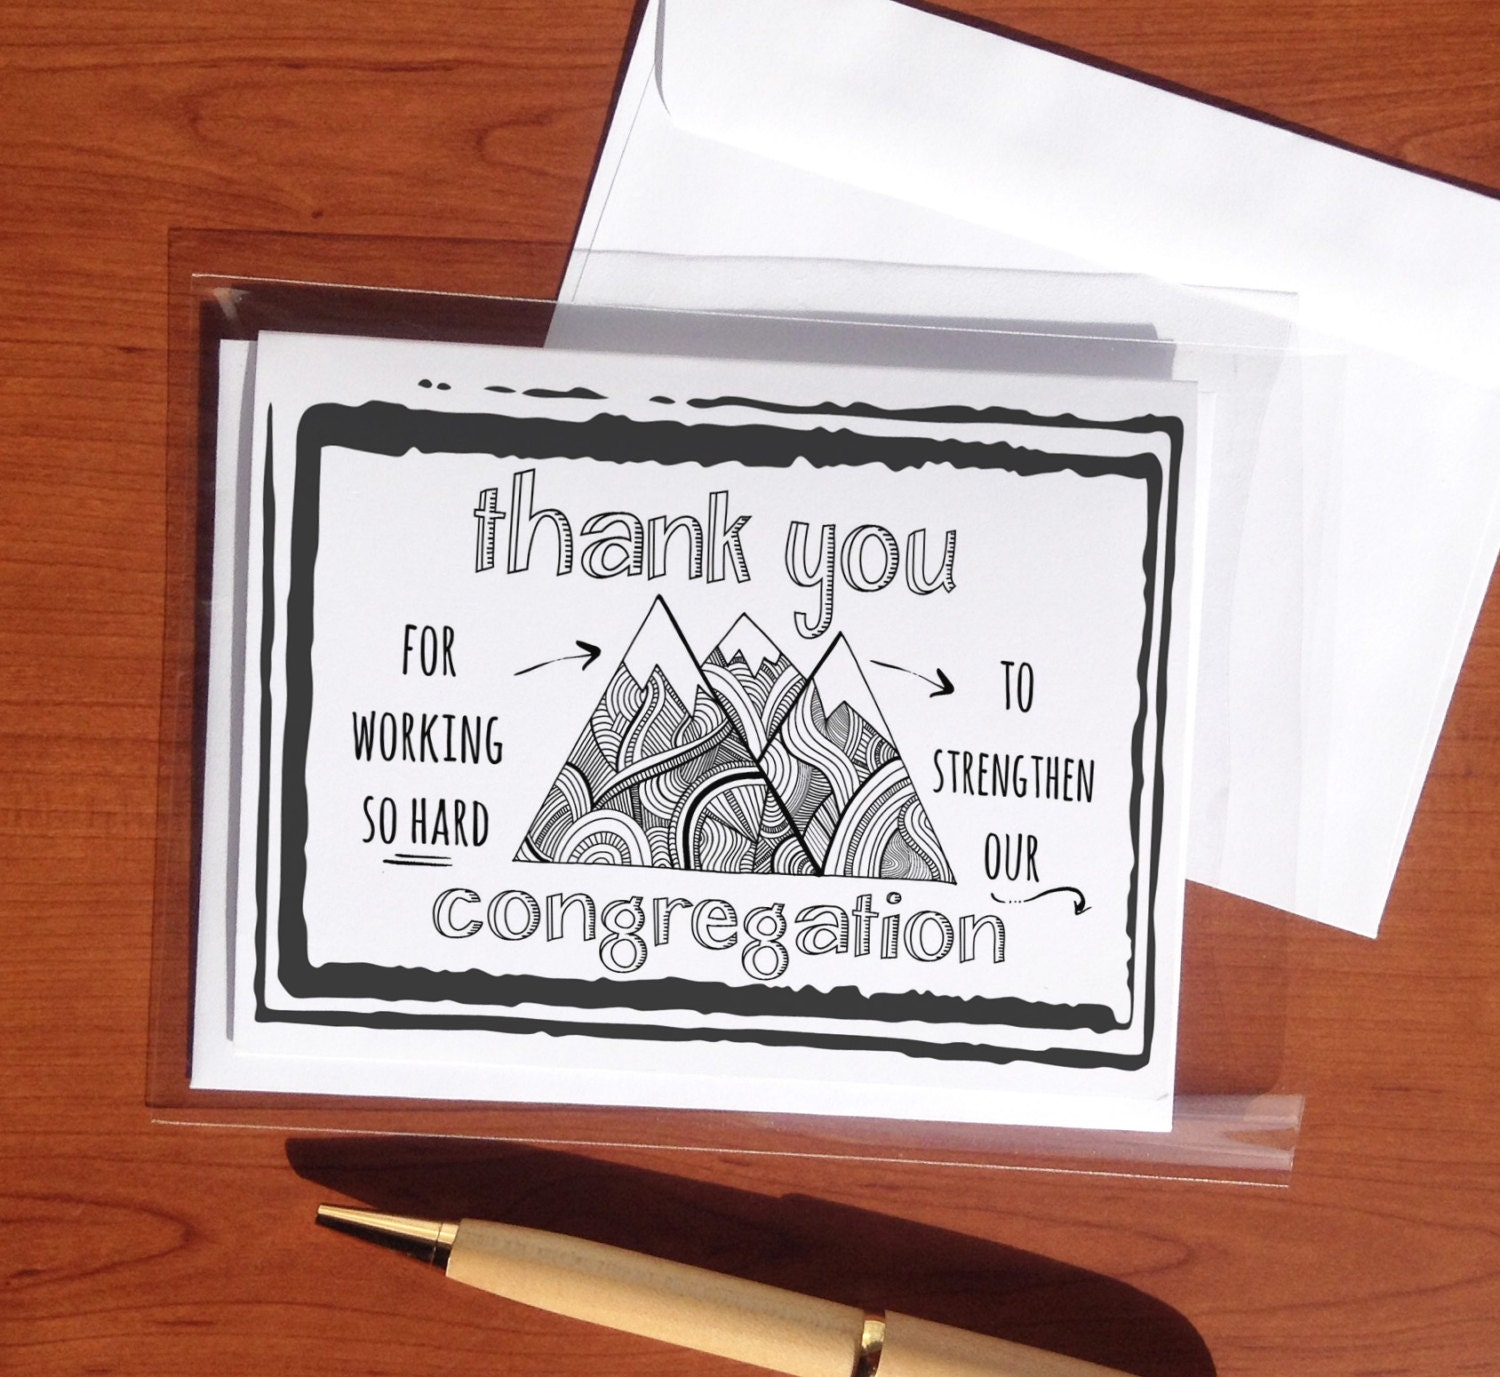 Strengthening our congregation jw greeting cards